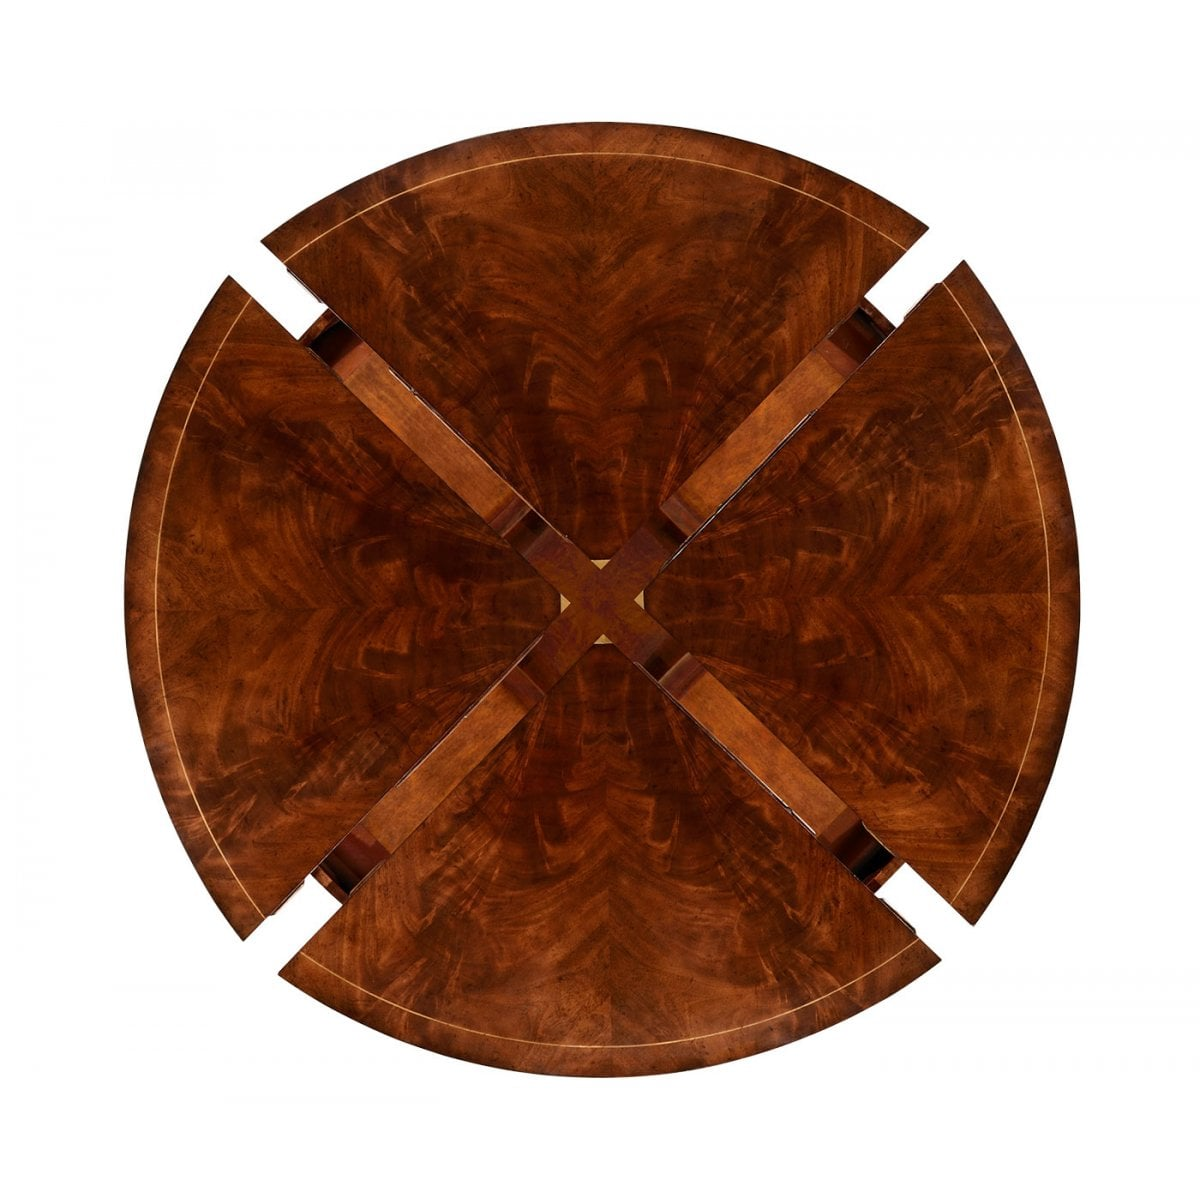 Round Dining Tables For 10: 8-10 Seater Round Extending Dining Table